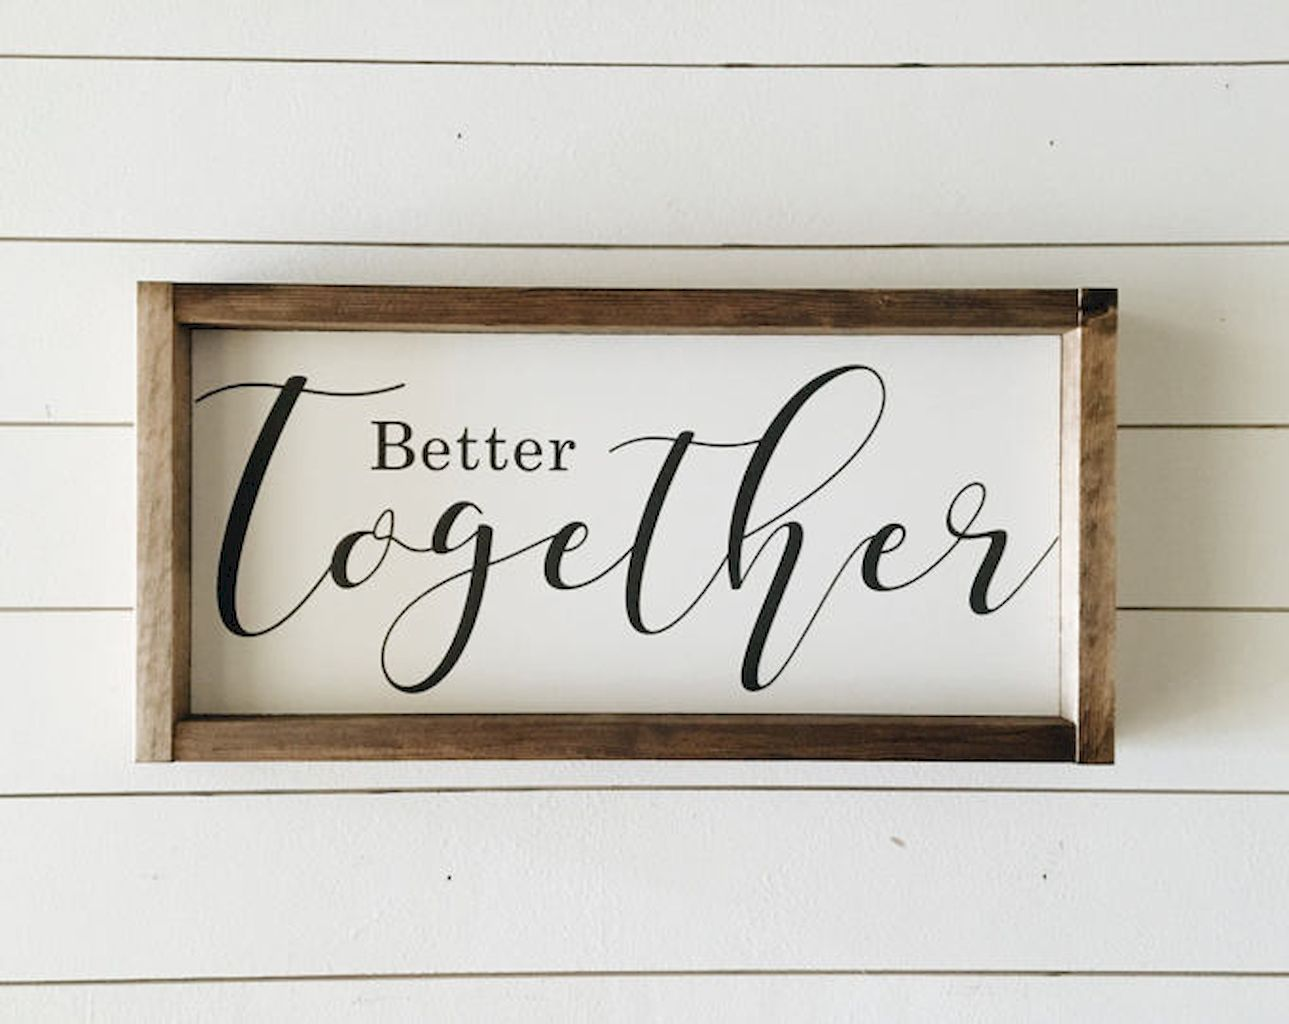 Rustic Charm Home Decor:15 DIY Wood Sign Ideas on Home Wall Decor Signs id=76761